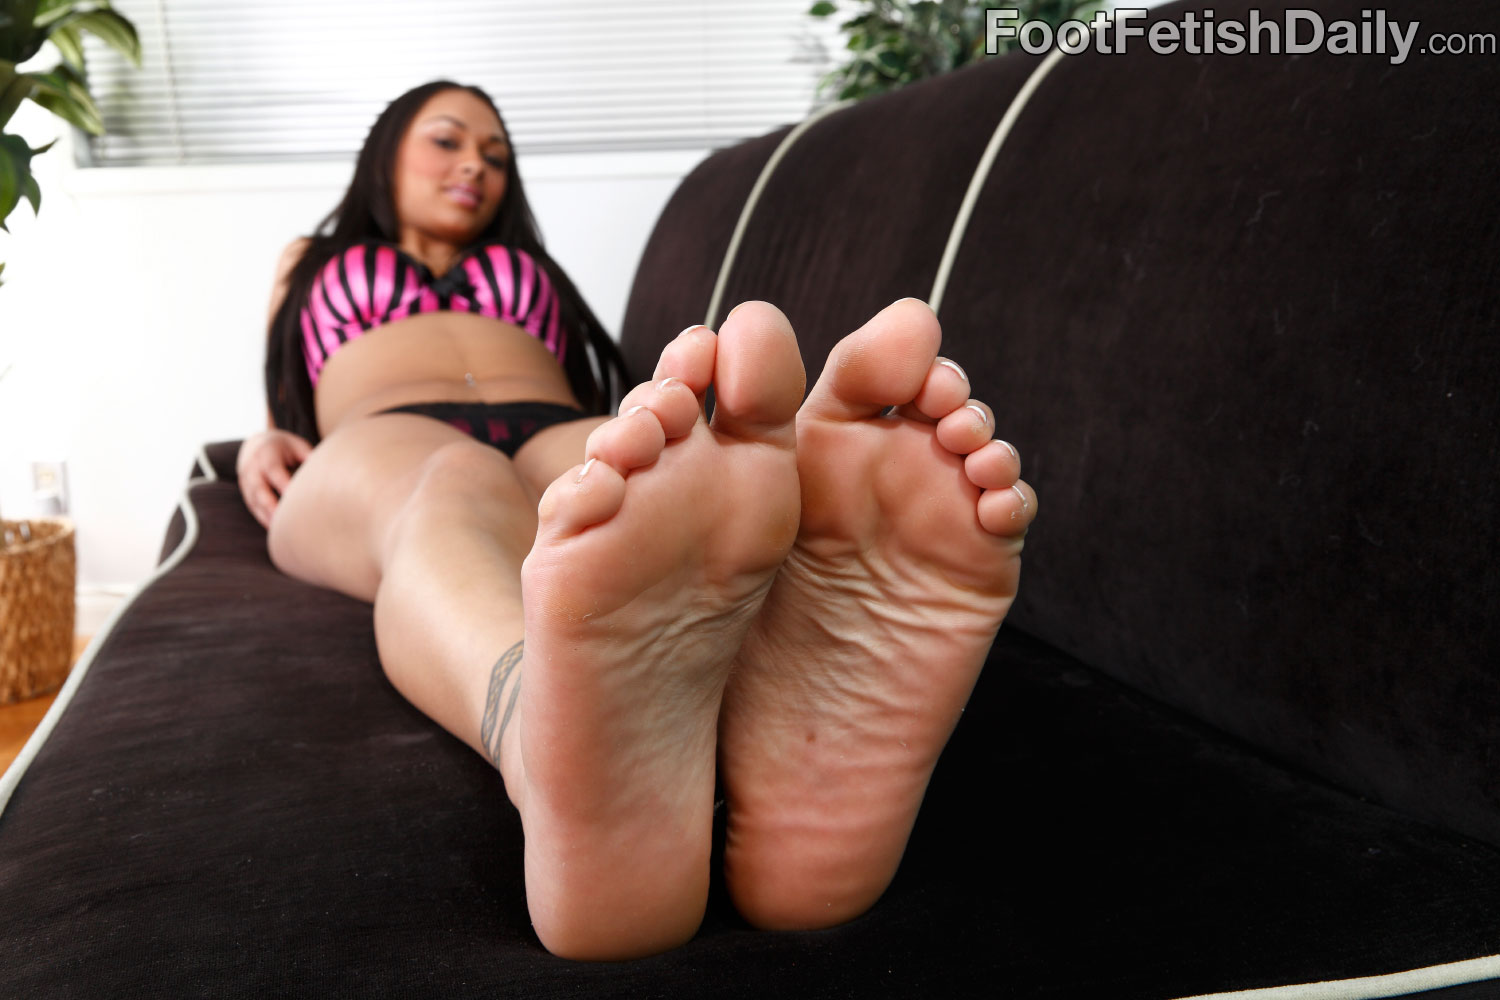 Topic, Bethany benz foot fetish are